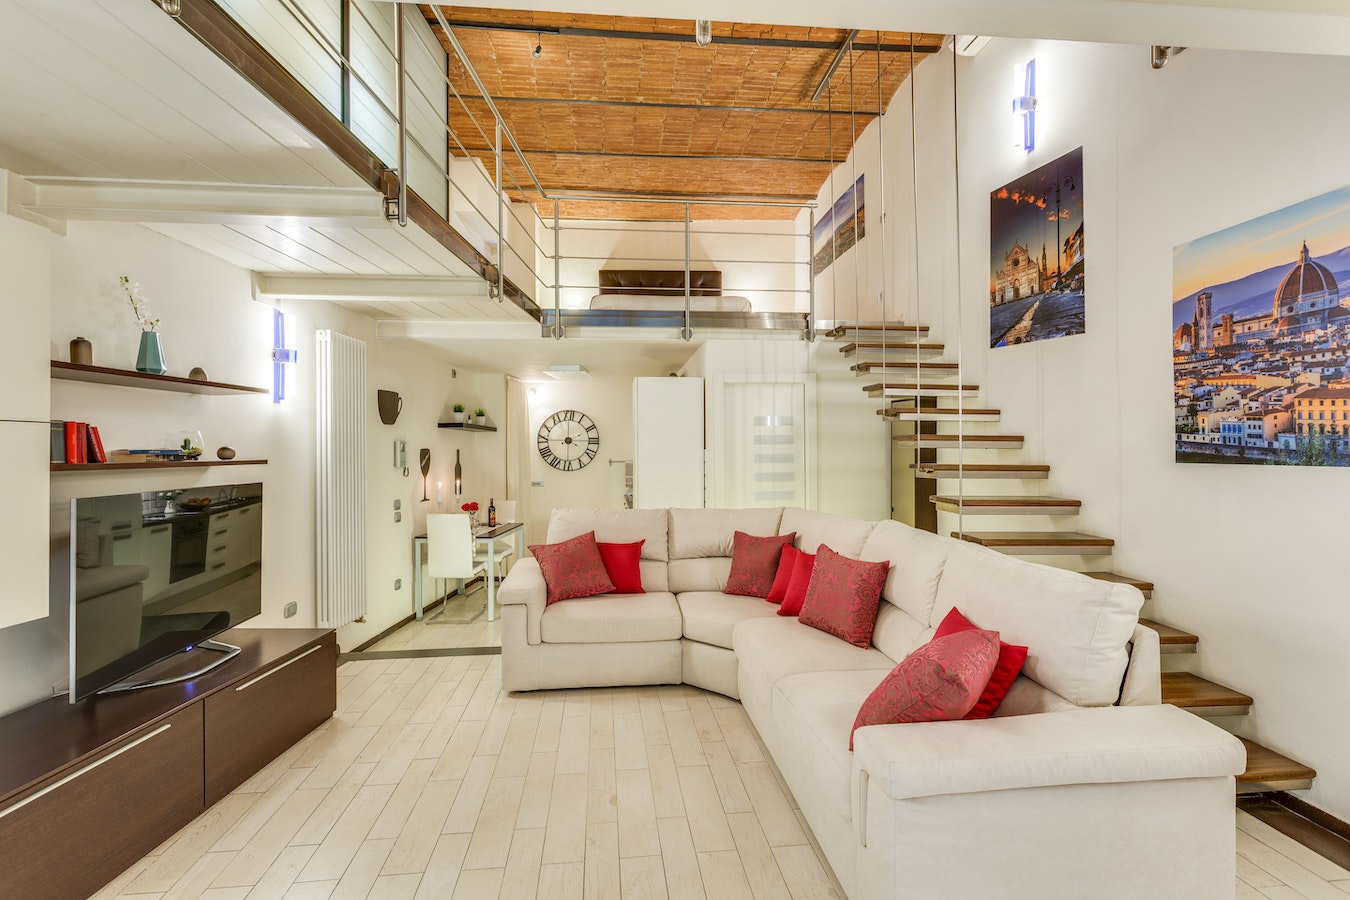 House Designs With Lofts Html on yurt with loft designs, house 3 bedroom designs, custom home designs, house family room designs, house kitchen designs, loft homes designs, cottage with loft designs, house with loft plans, house with loft bedroom, house with loft room,